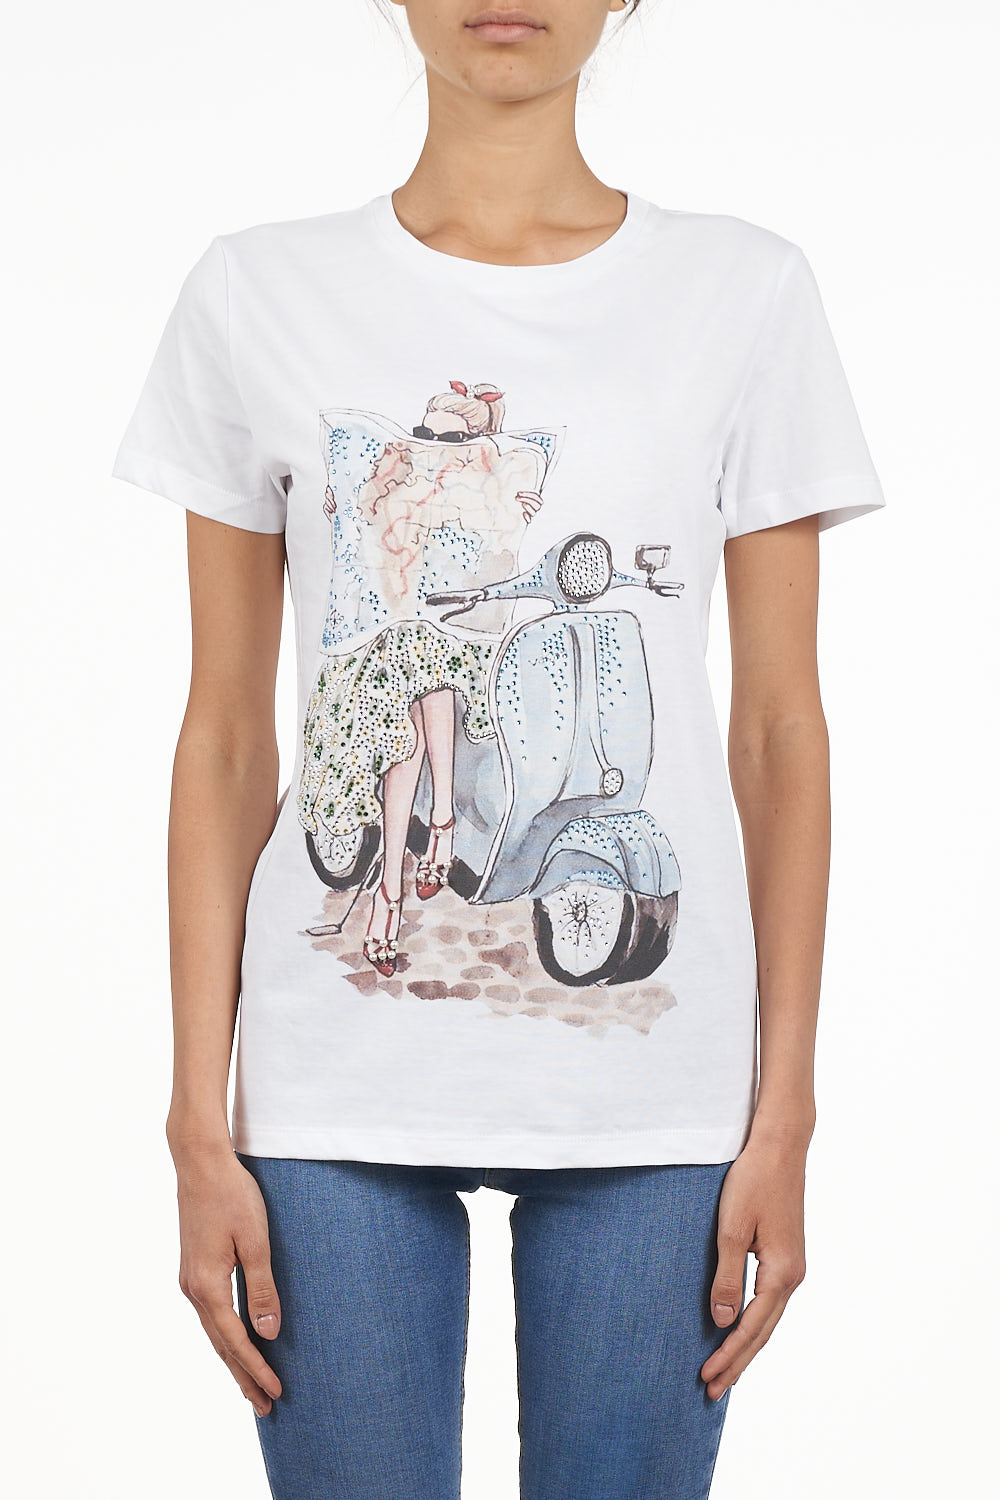 #7.0 SETTEPUNTOZERO white T-shirt with rhinestones | signorina on a vespa